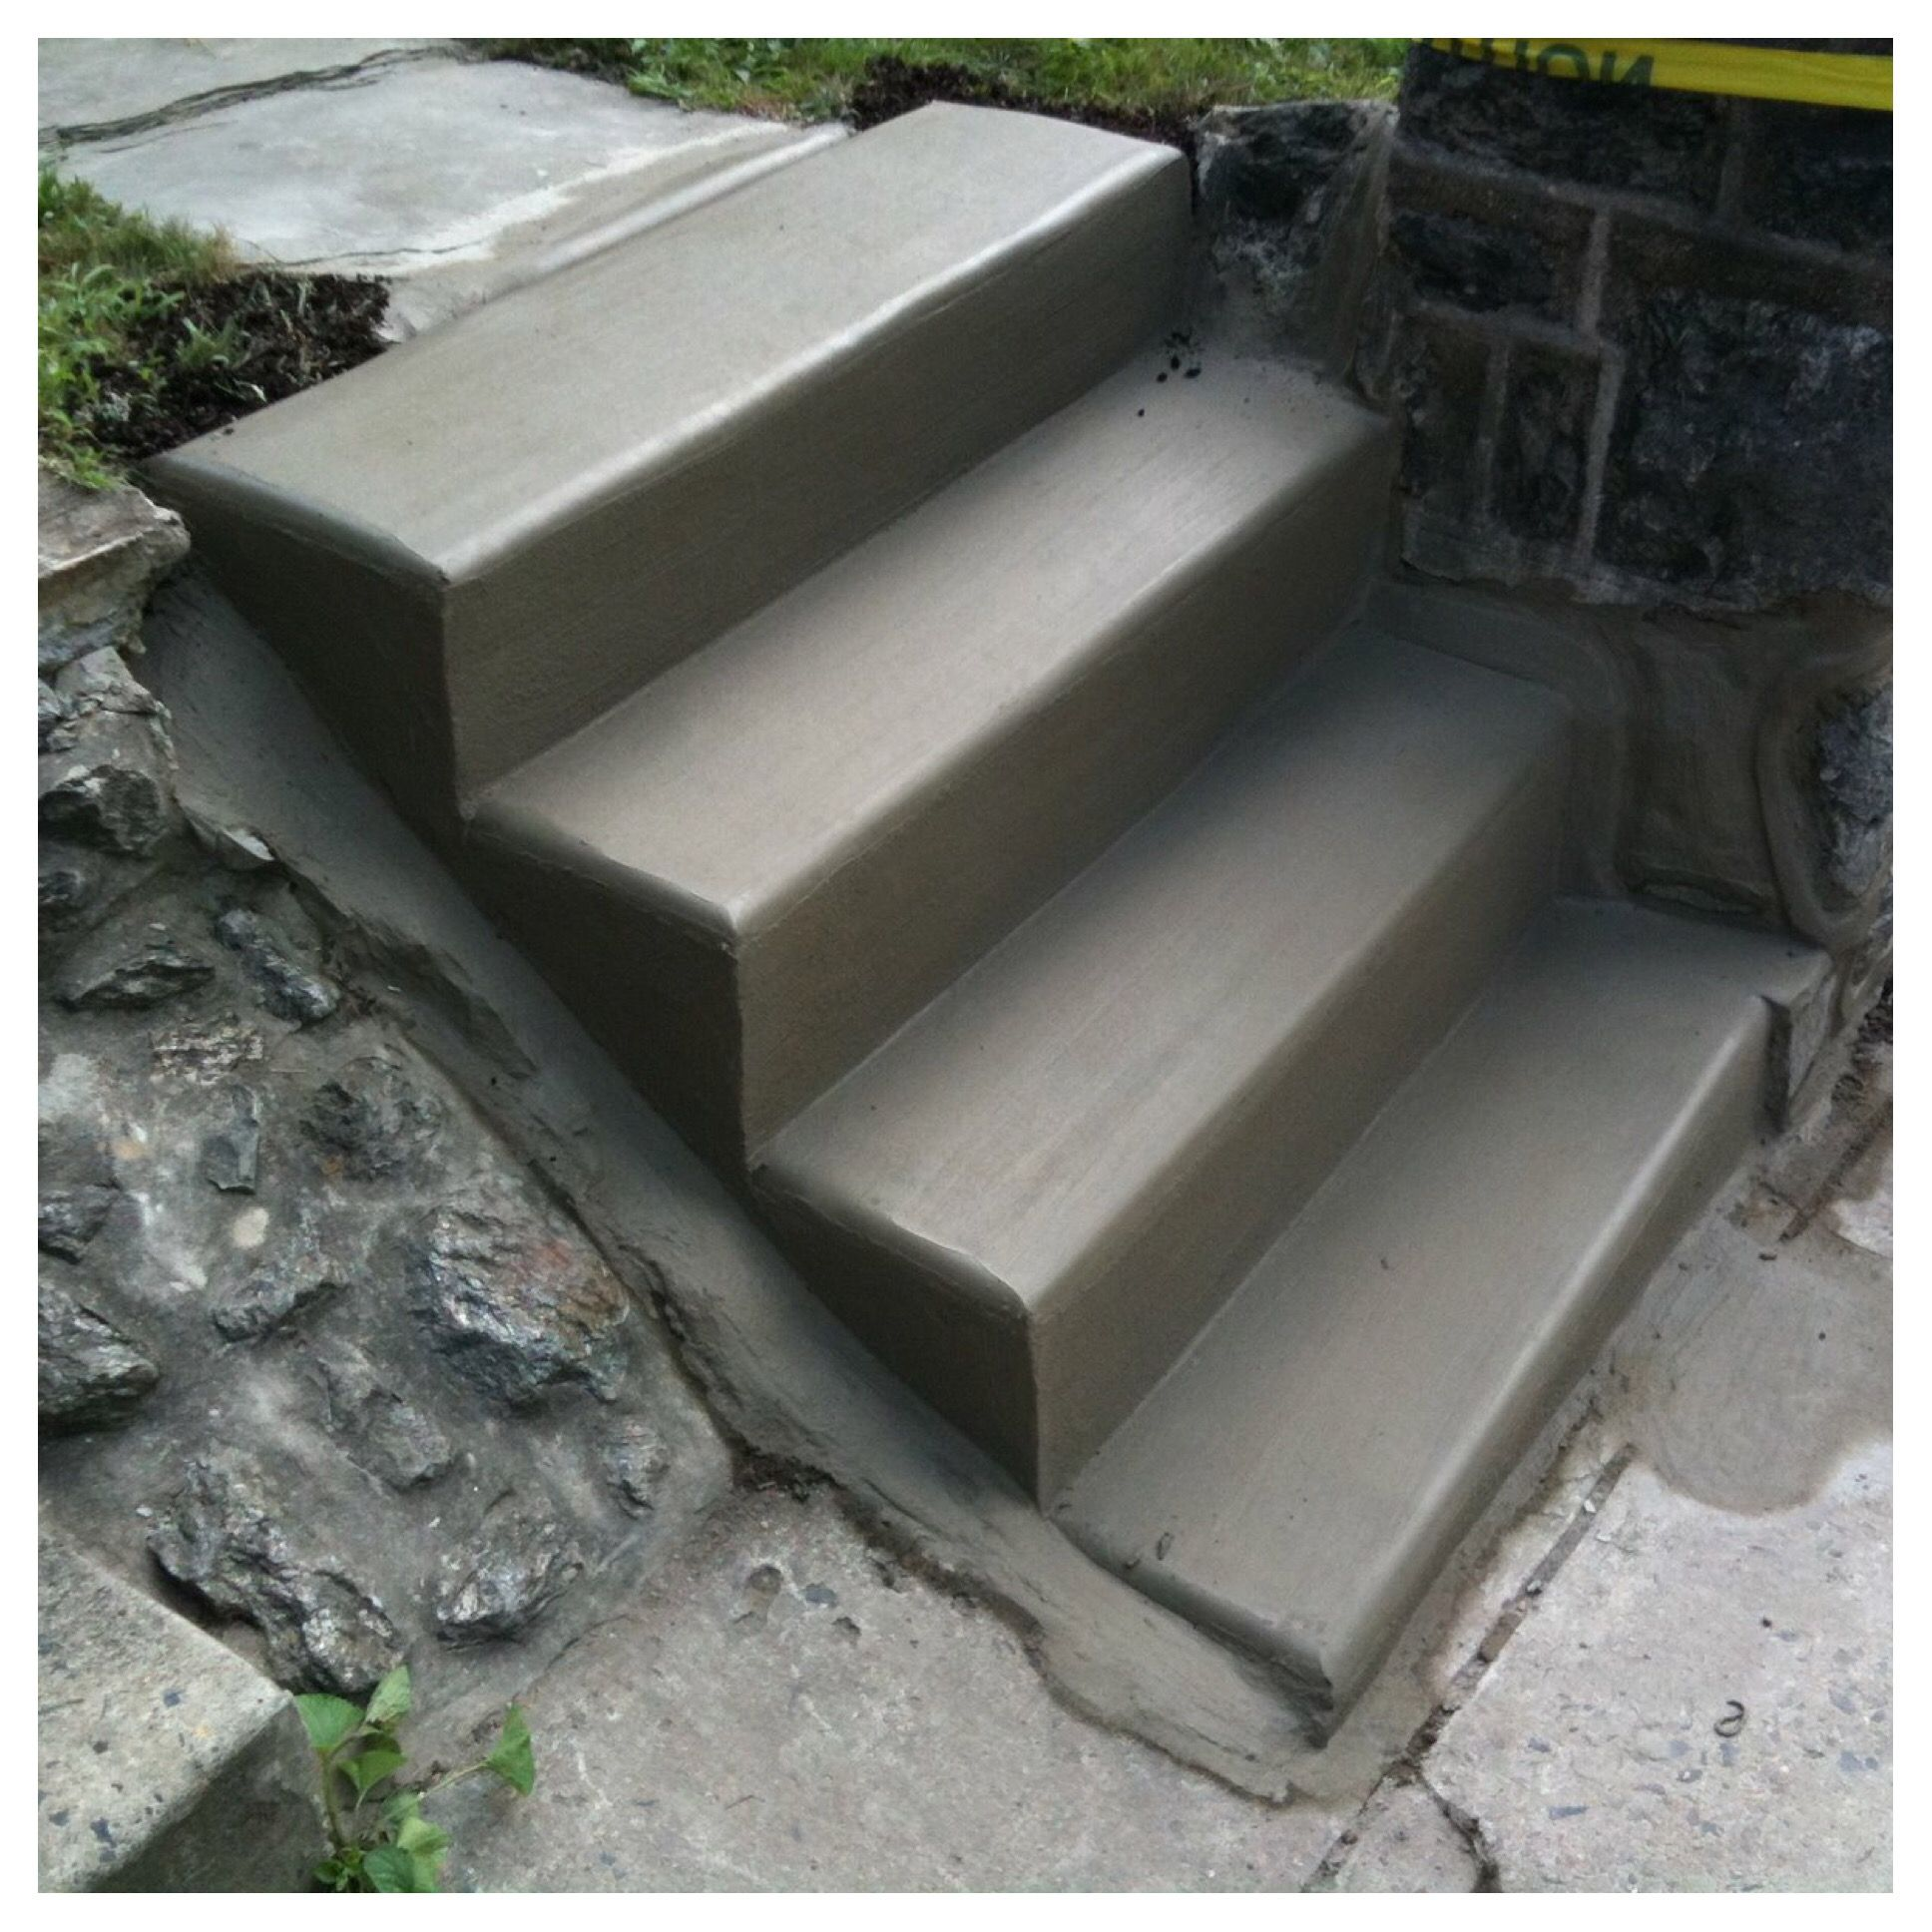 square steps in philadelphia concrete steps concrete work cement work concrete construction concrete work contractor cement steps steps